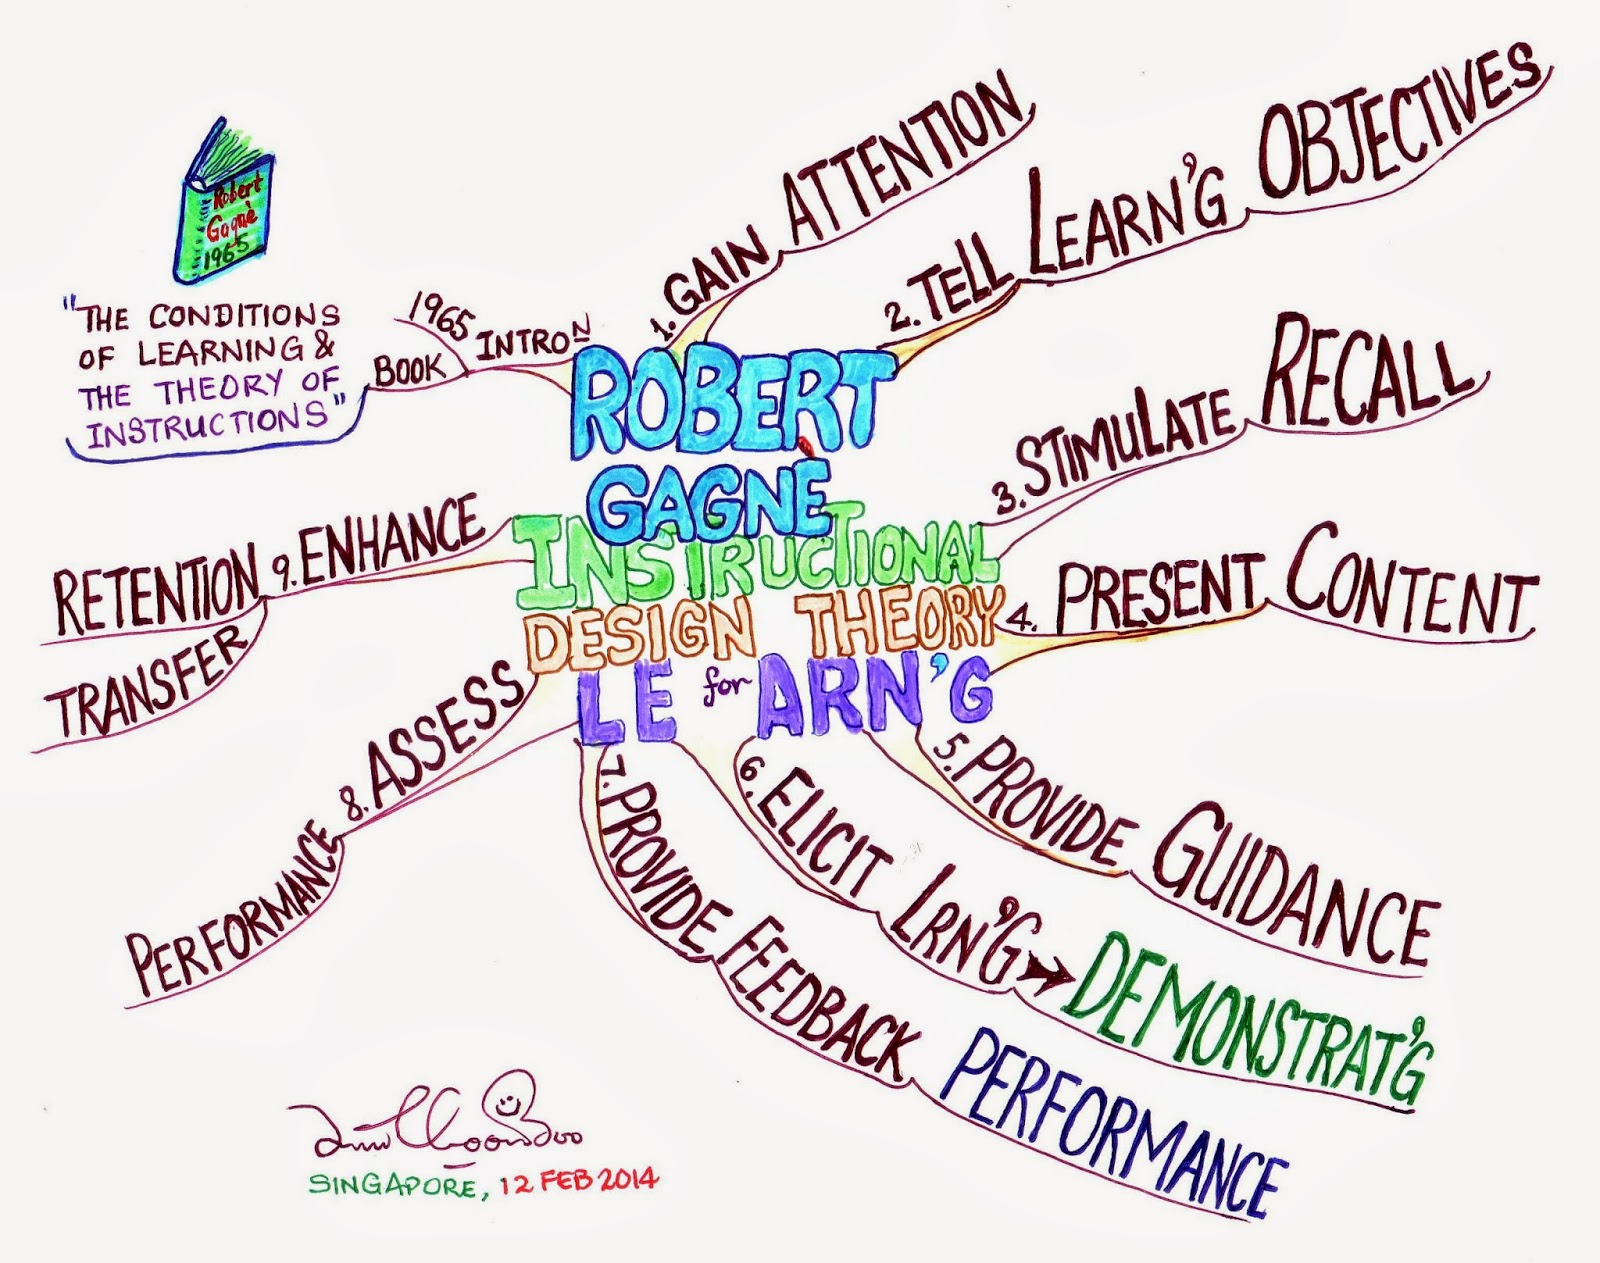 Learn To Be A Mindmapper Lim Choon Boo My Mind Map Of Robert